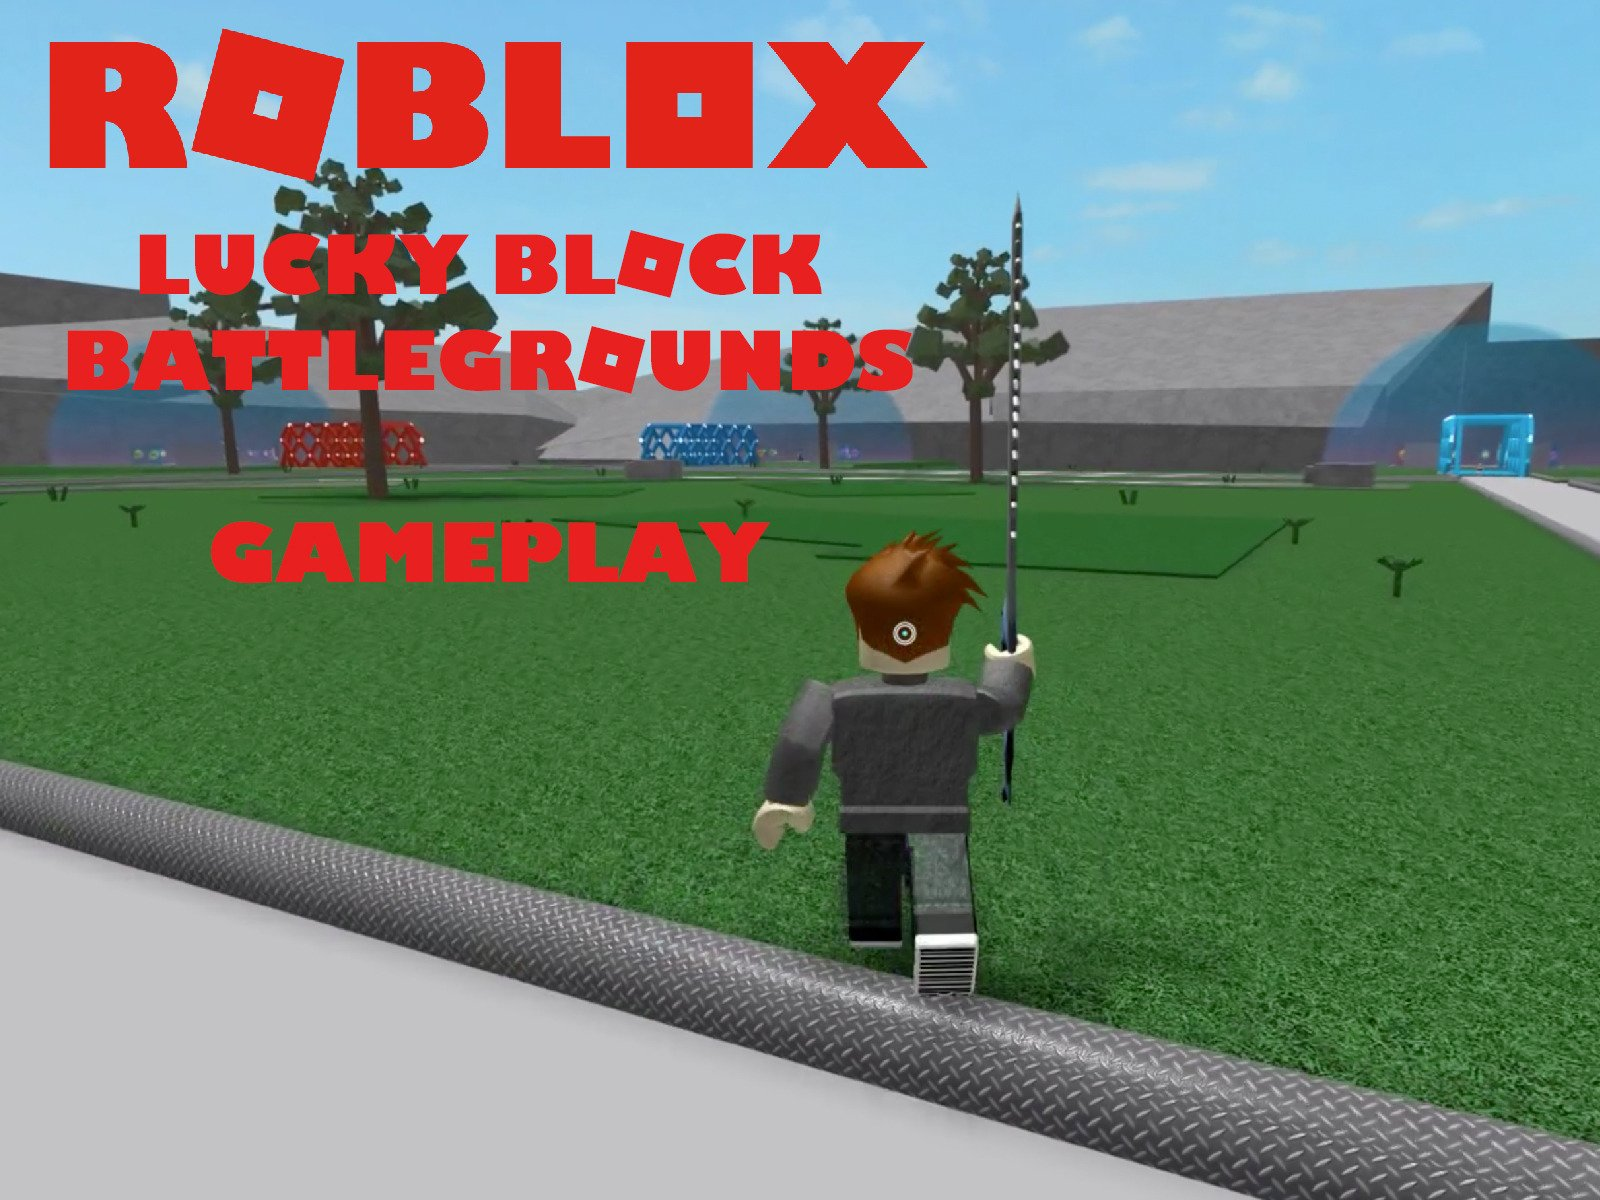 Clip: Roblox Lucky Block Battlegrounds Gameplay